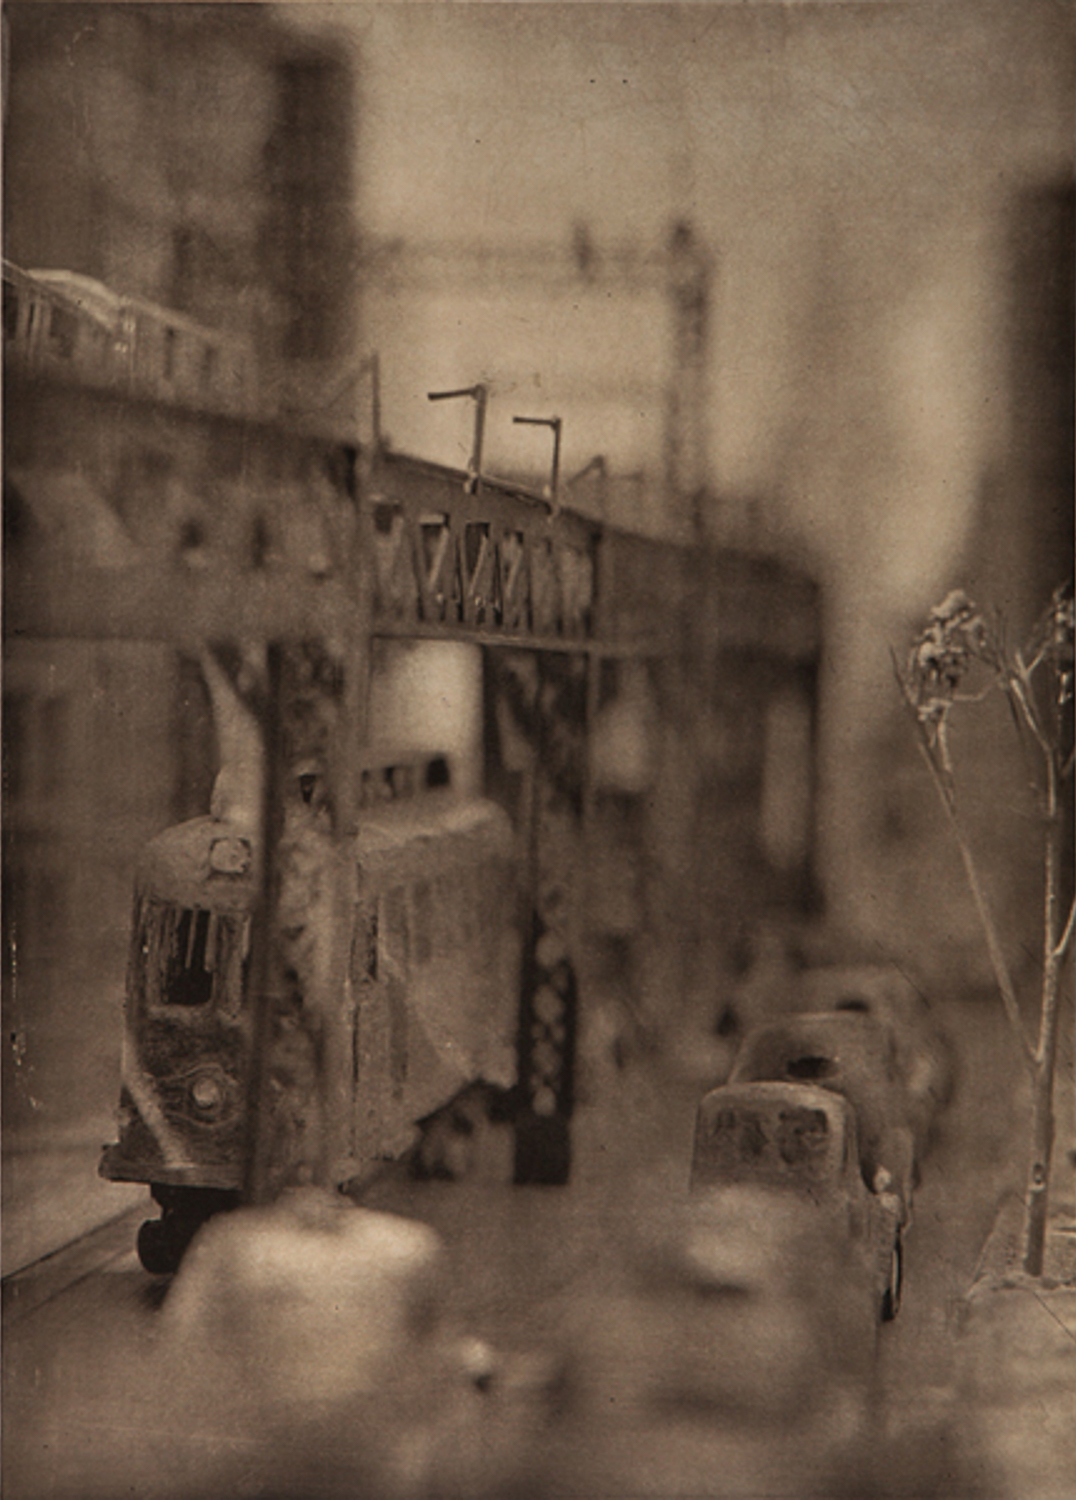 Image above: ©Lothar Osterburg, Streetcar of Lonliness, 2011 Ed. 1/7, Photogravure with gampi chine colle on somerset white